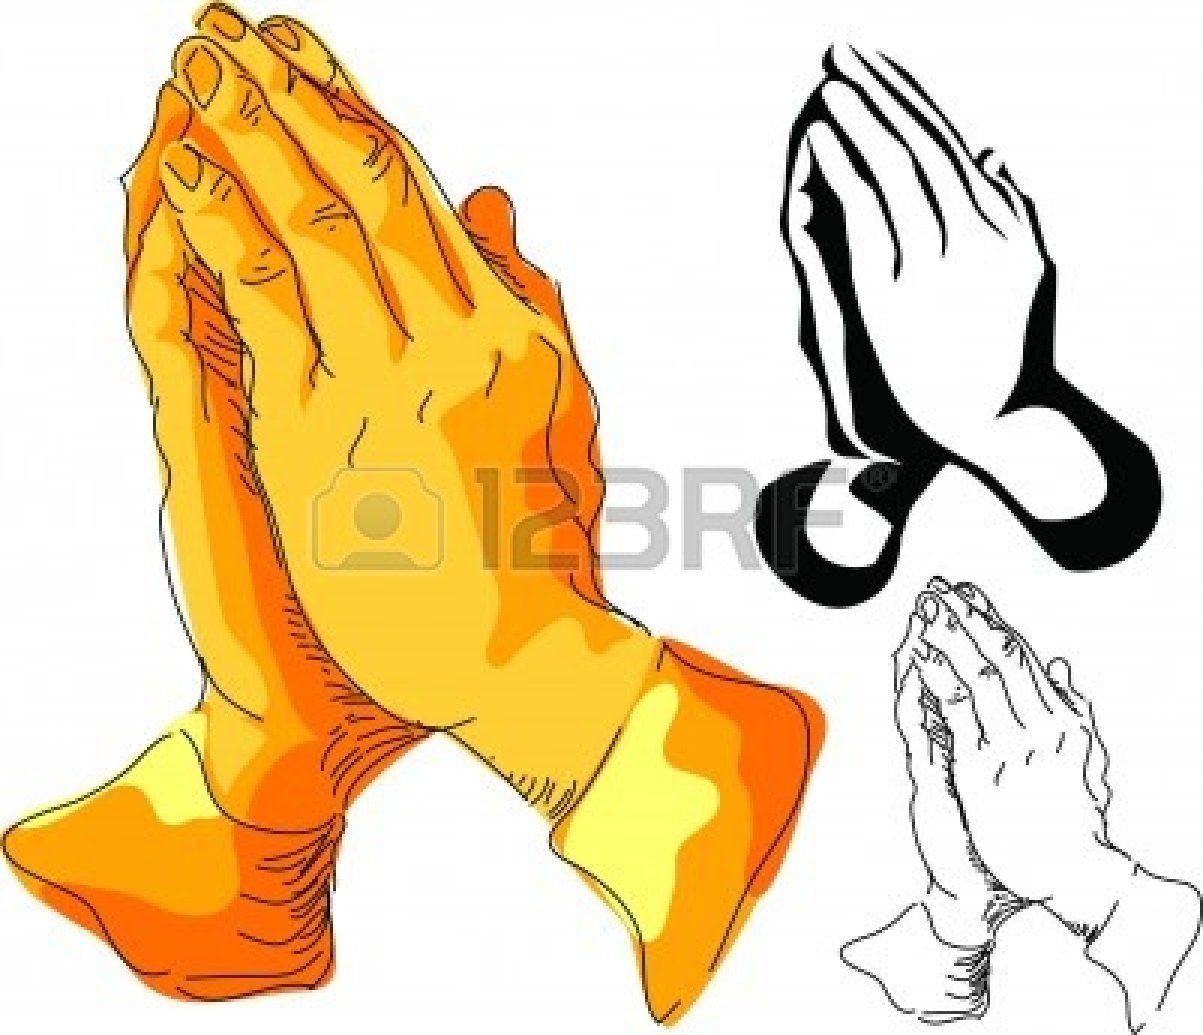 group-prayer-hands-10568648-praying-hands jpgGroup Prayer Hands